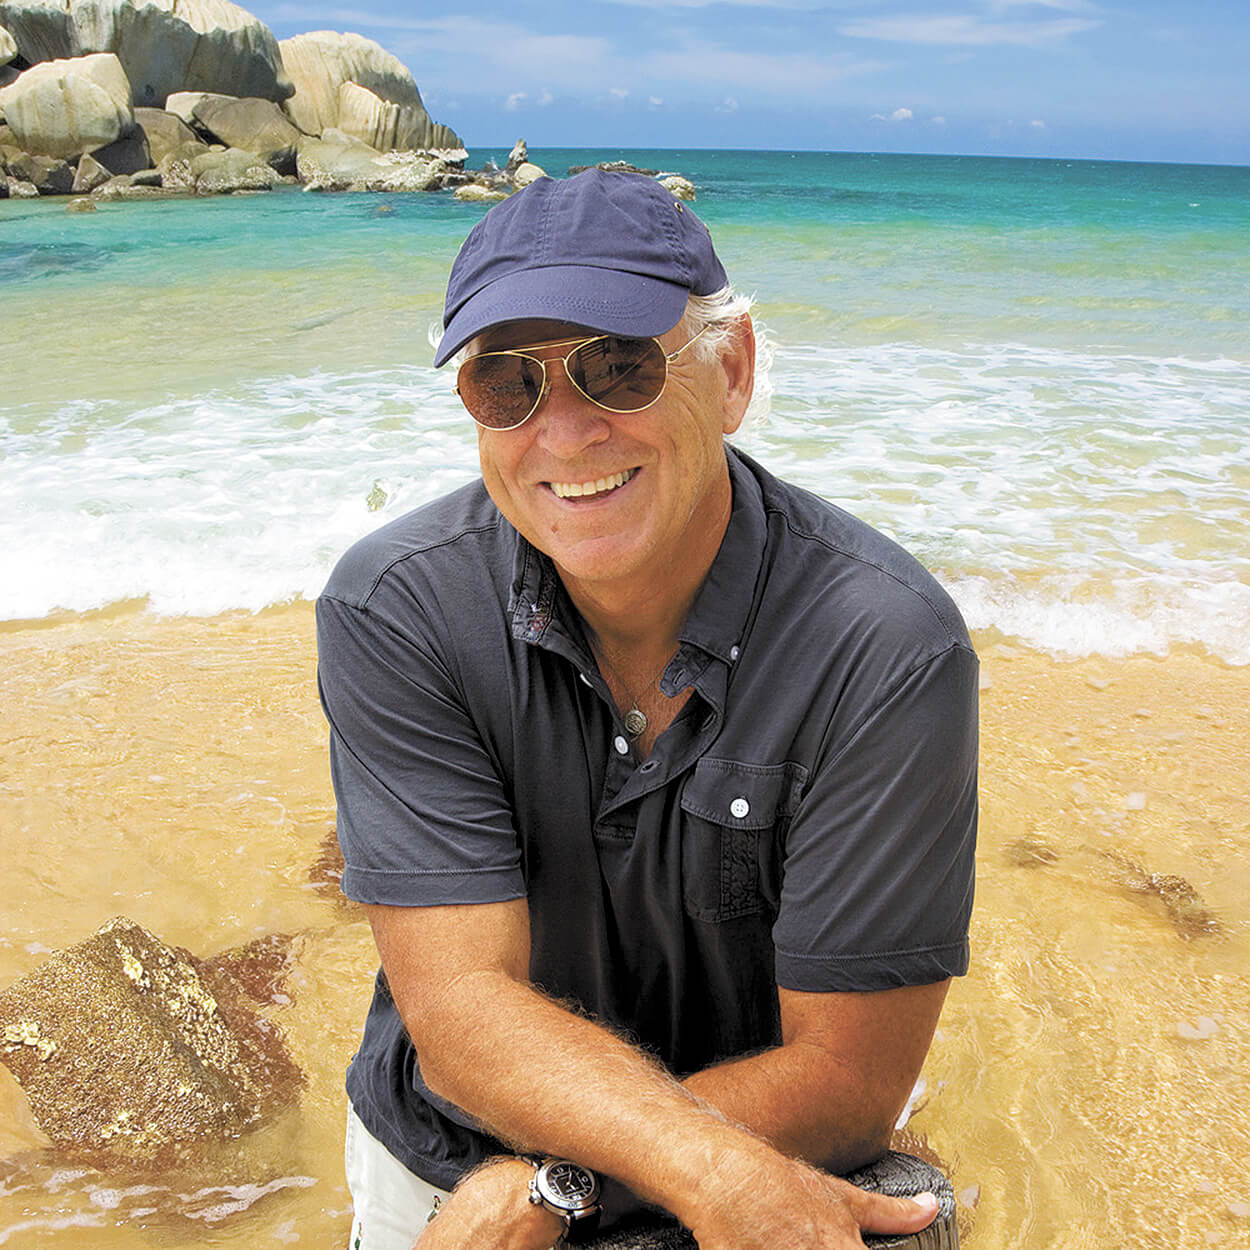 cover story jimmy buffett returning home with a world of experience